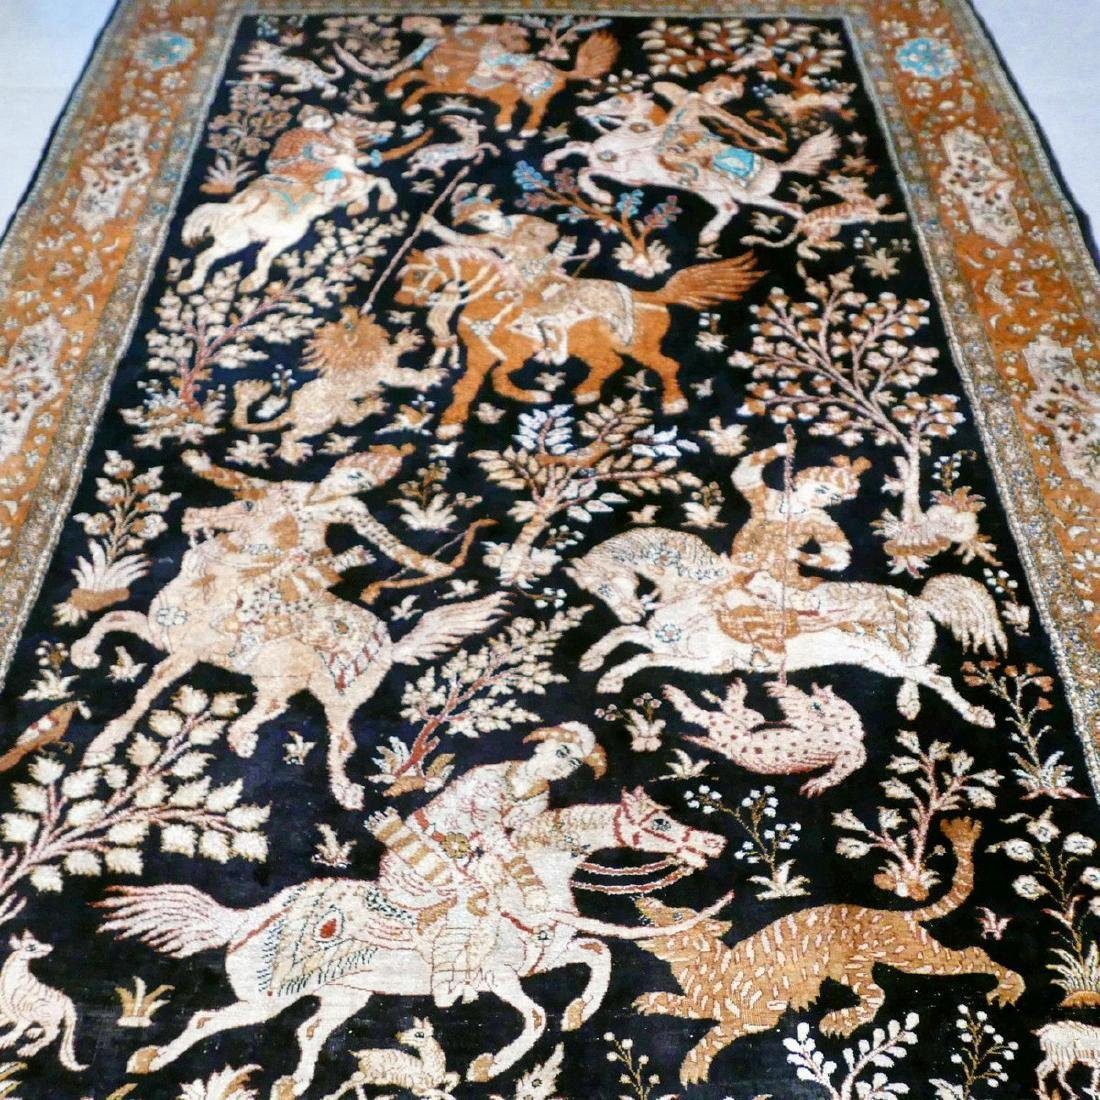 Hand Knotted Silk Hunting Scene Qum Rug 6.3x4.1 - 6